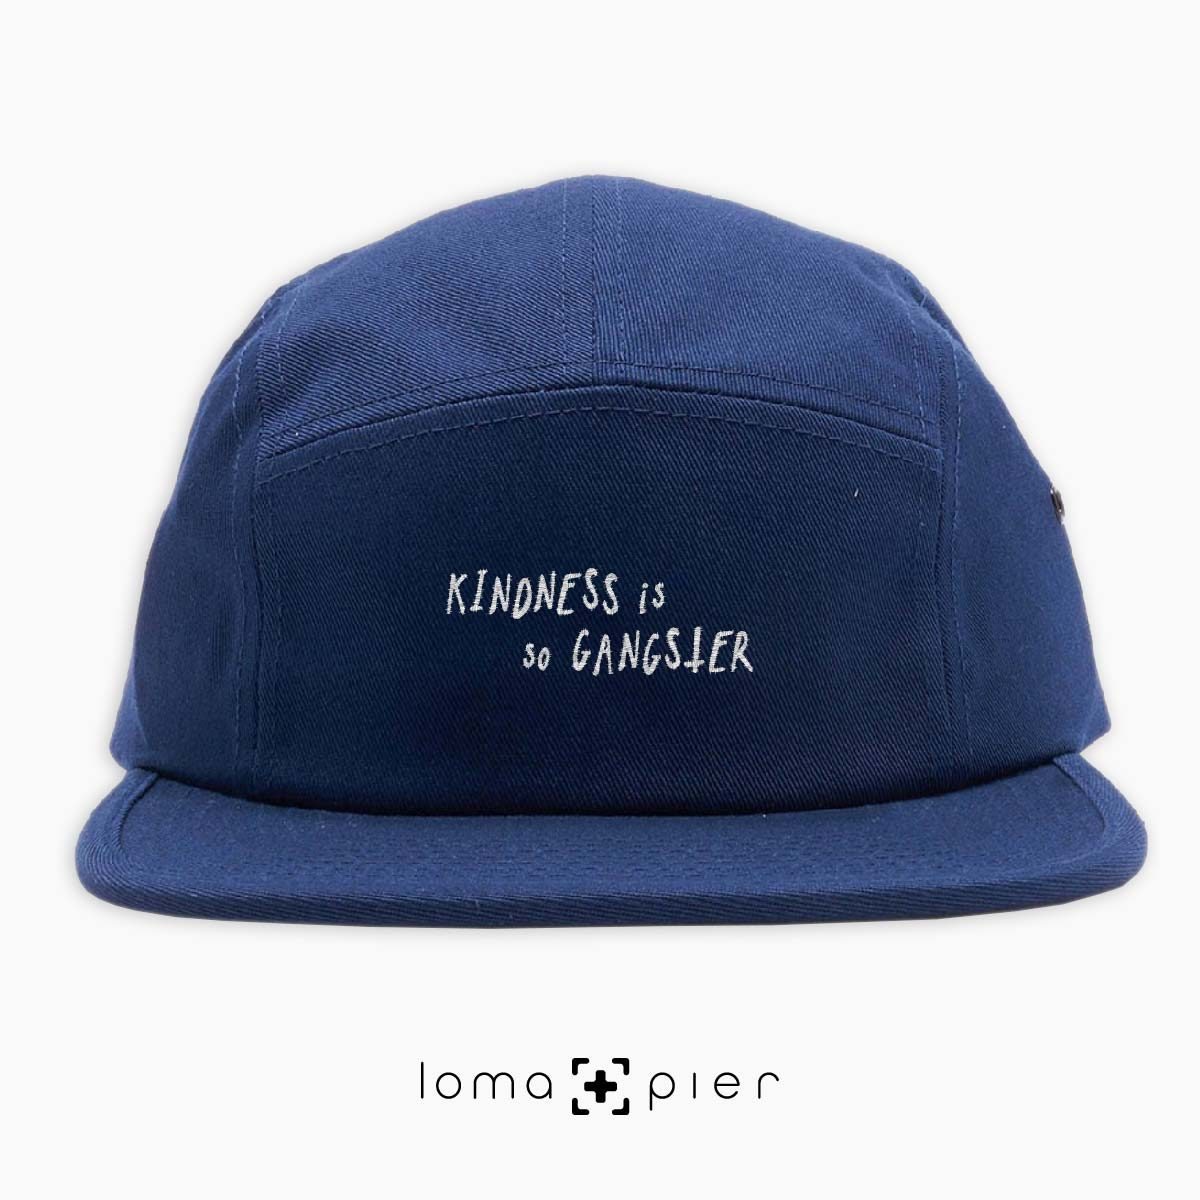 KINDNESS IS SO GANGSTER typography embroidered on a navy blue cotton 5-panel hat with white thread by loma+pier hat store